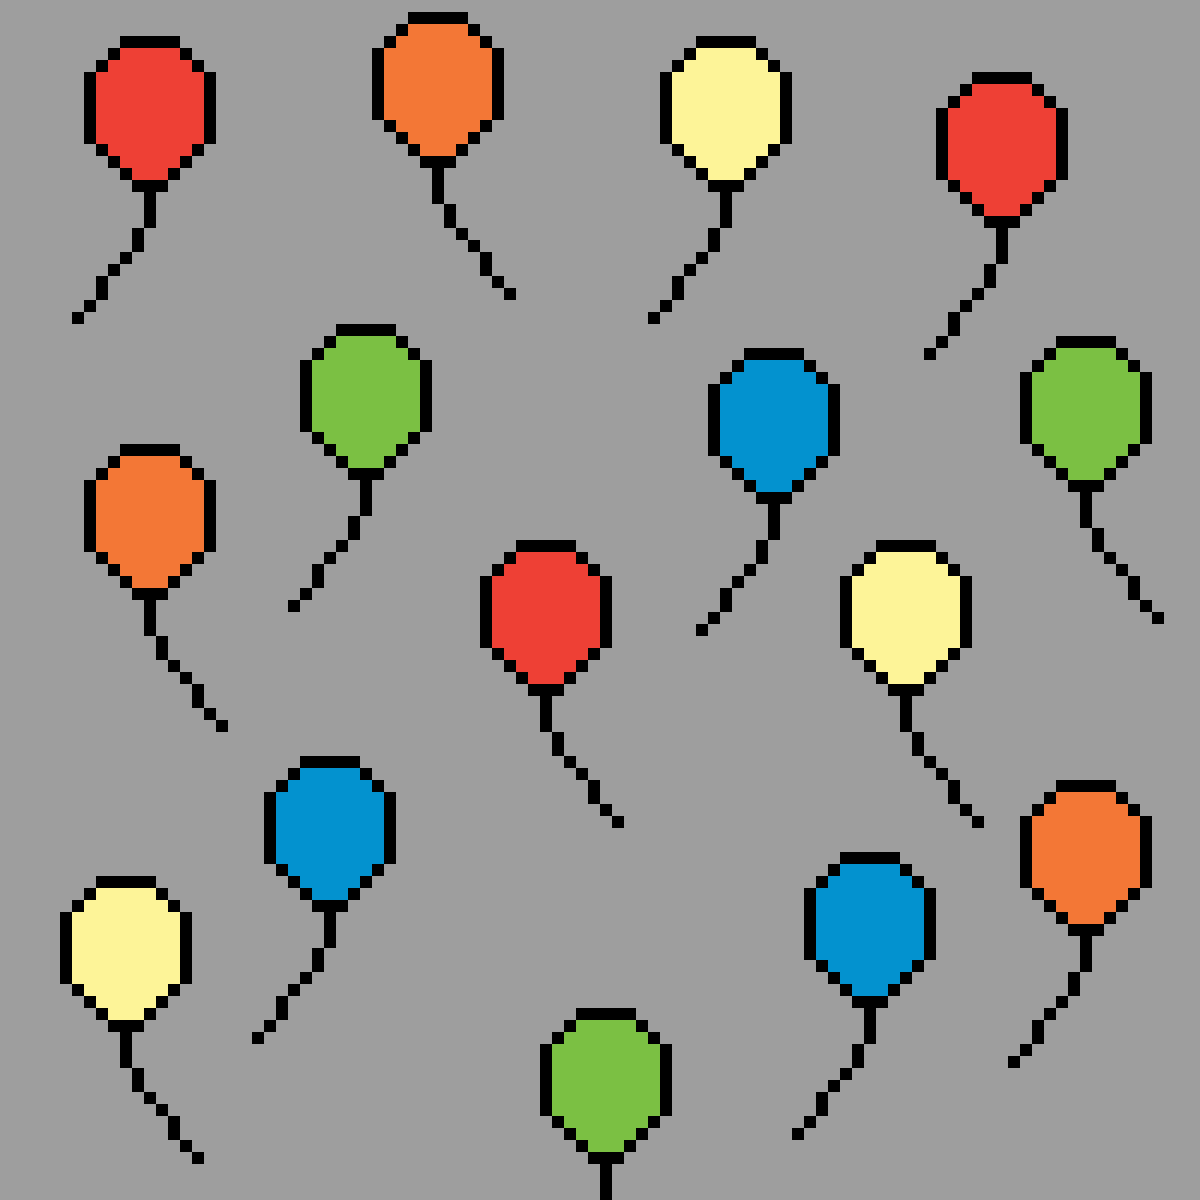 balloons by WolfiedotExe